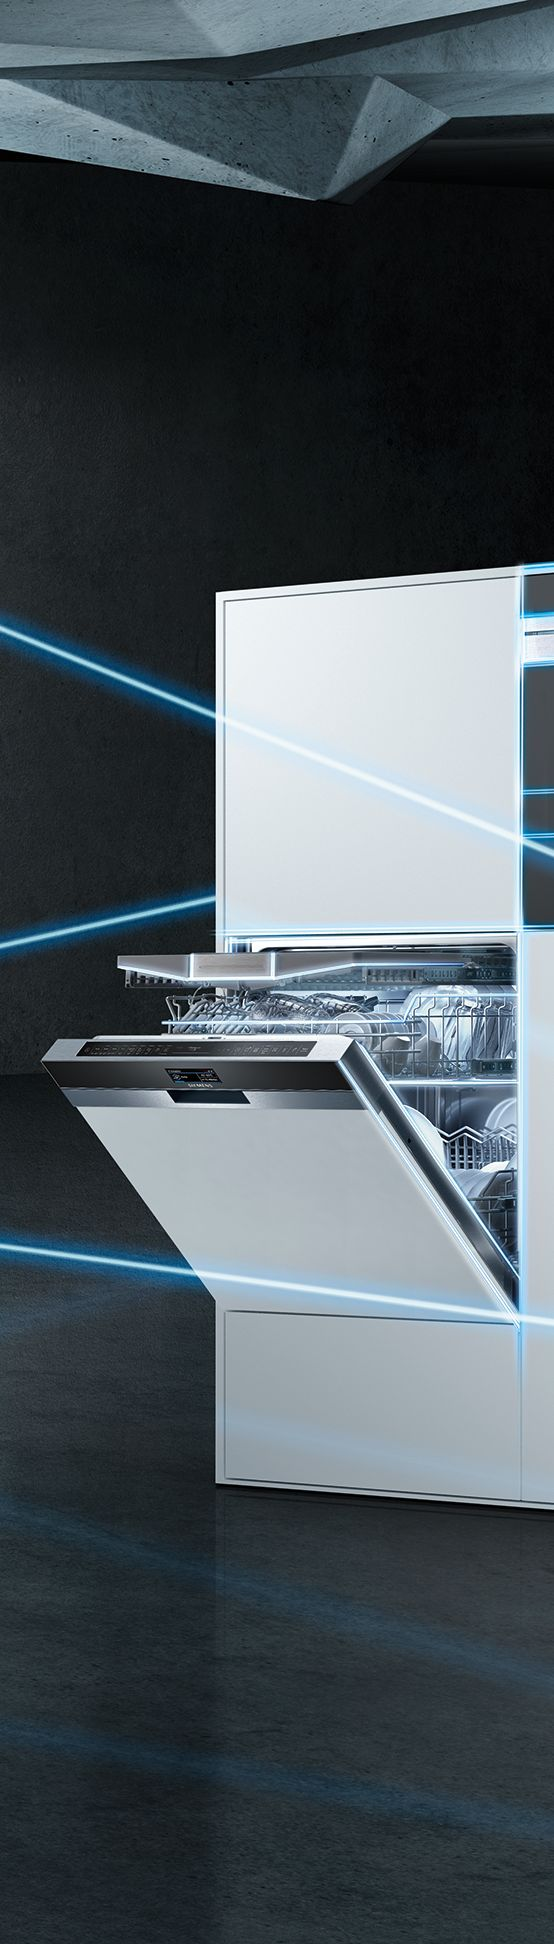 The Future Of Dishwashers Control Your Siemens Dishwasher From